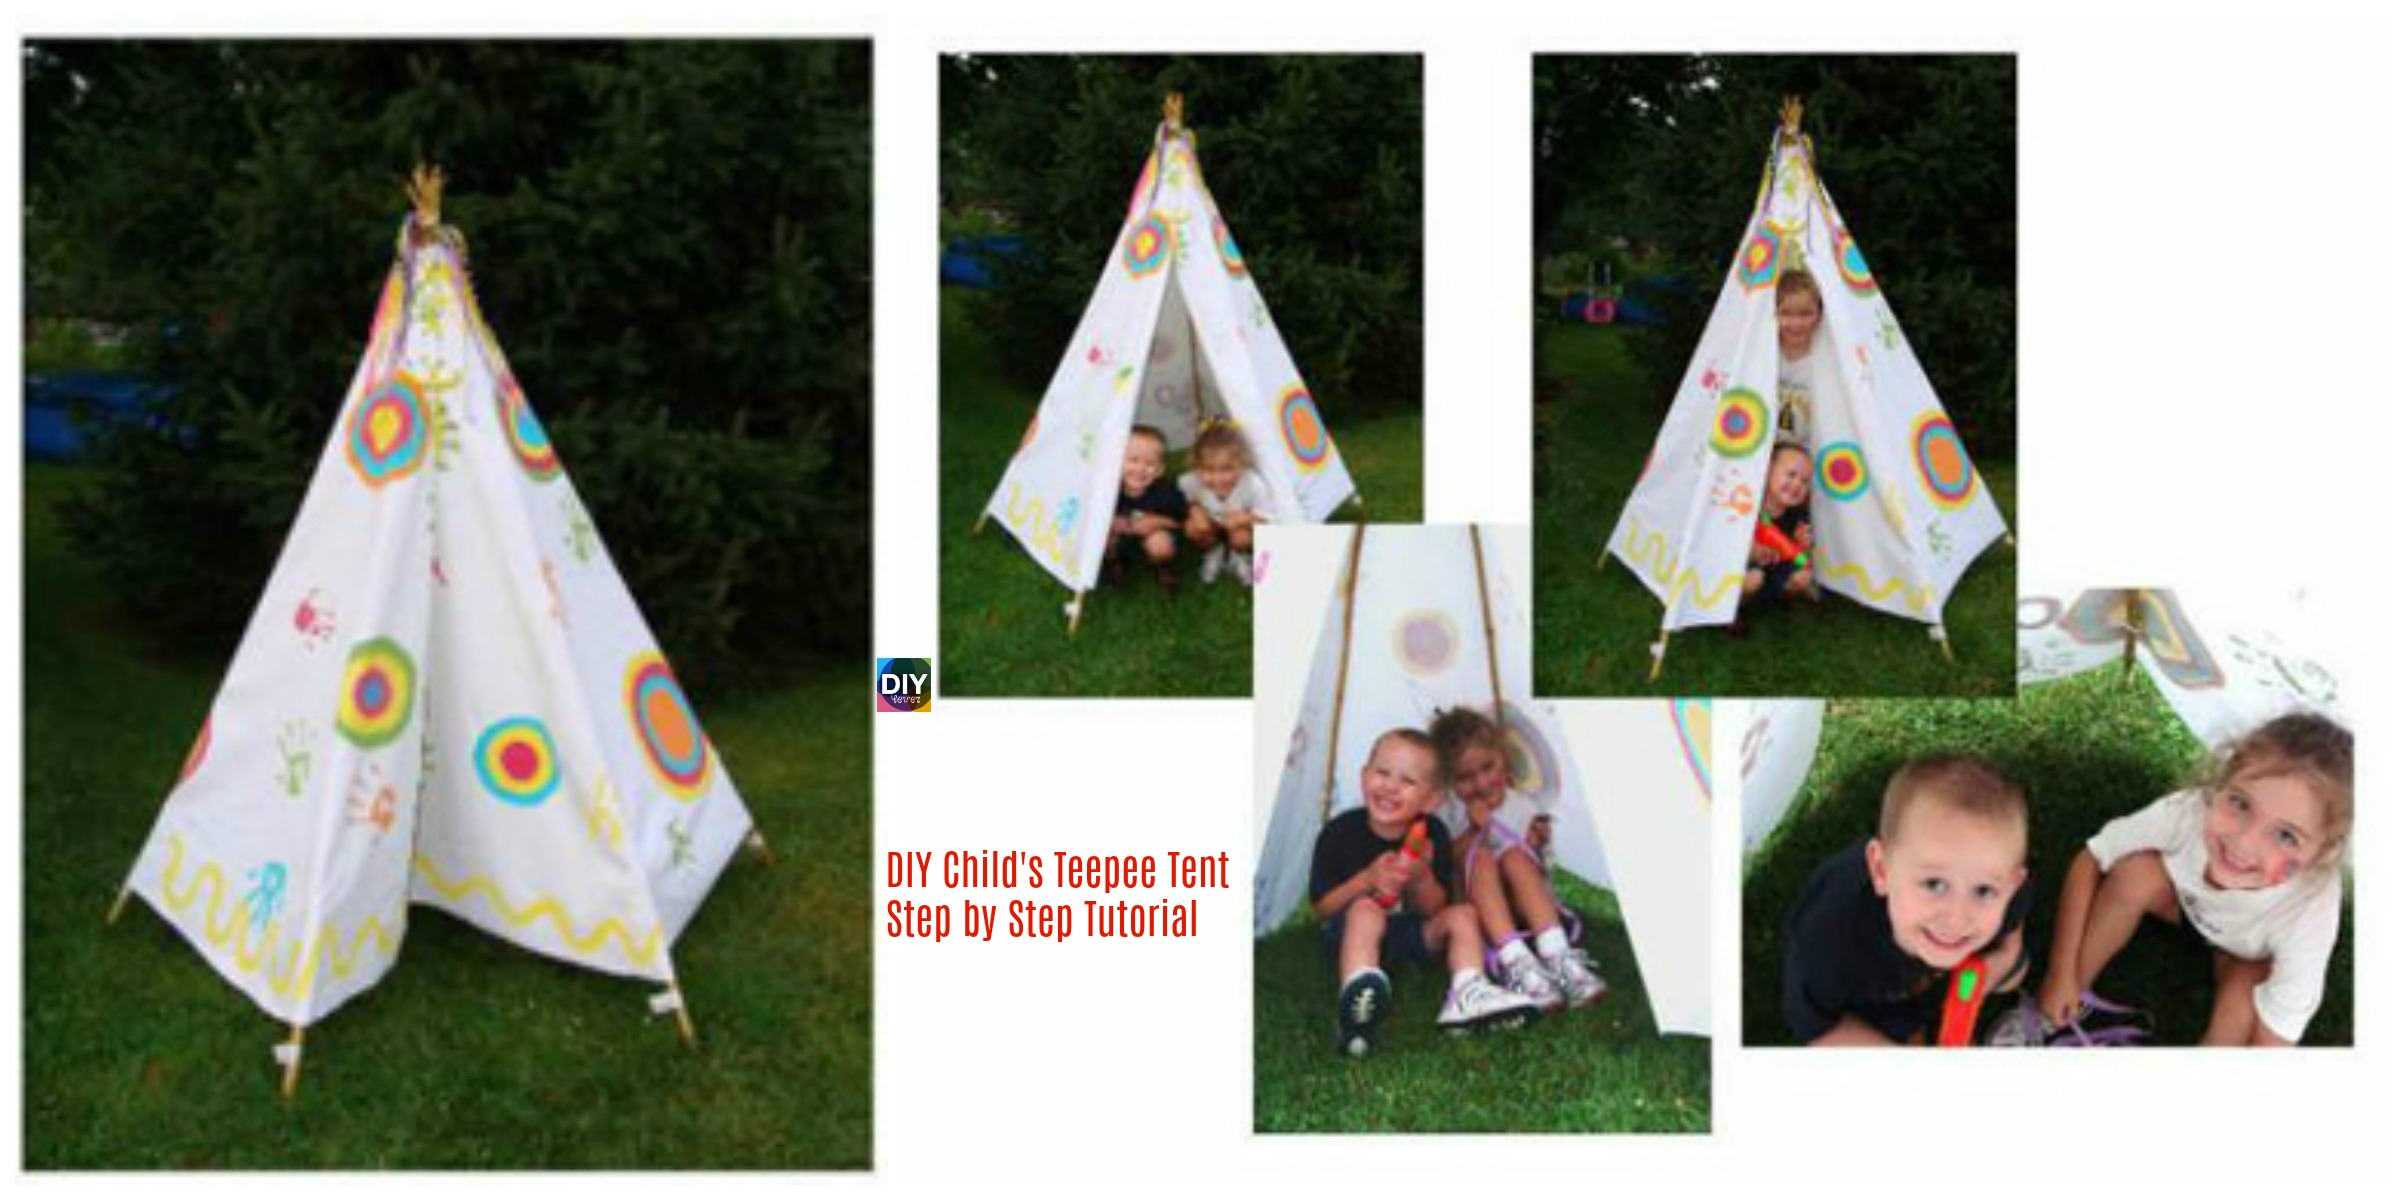 DIY Child's Teepee Tent Step by Step Tutorial